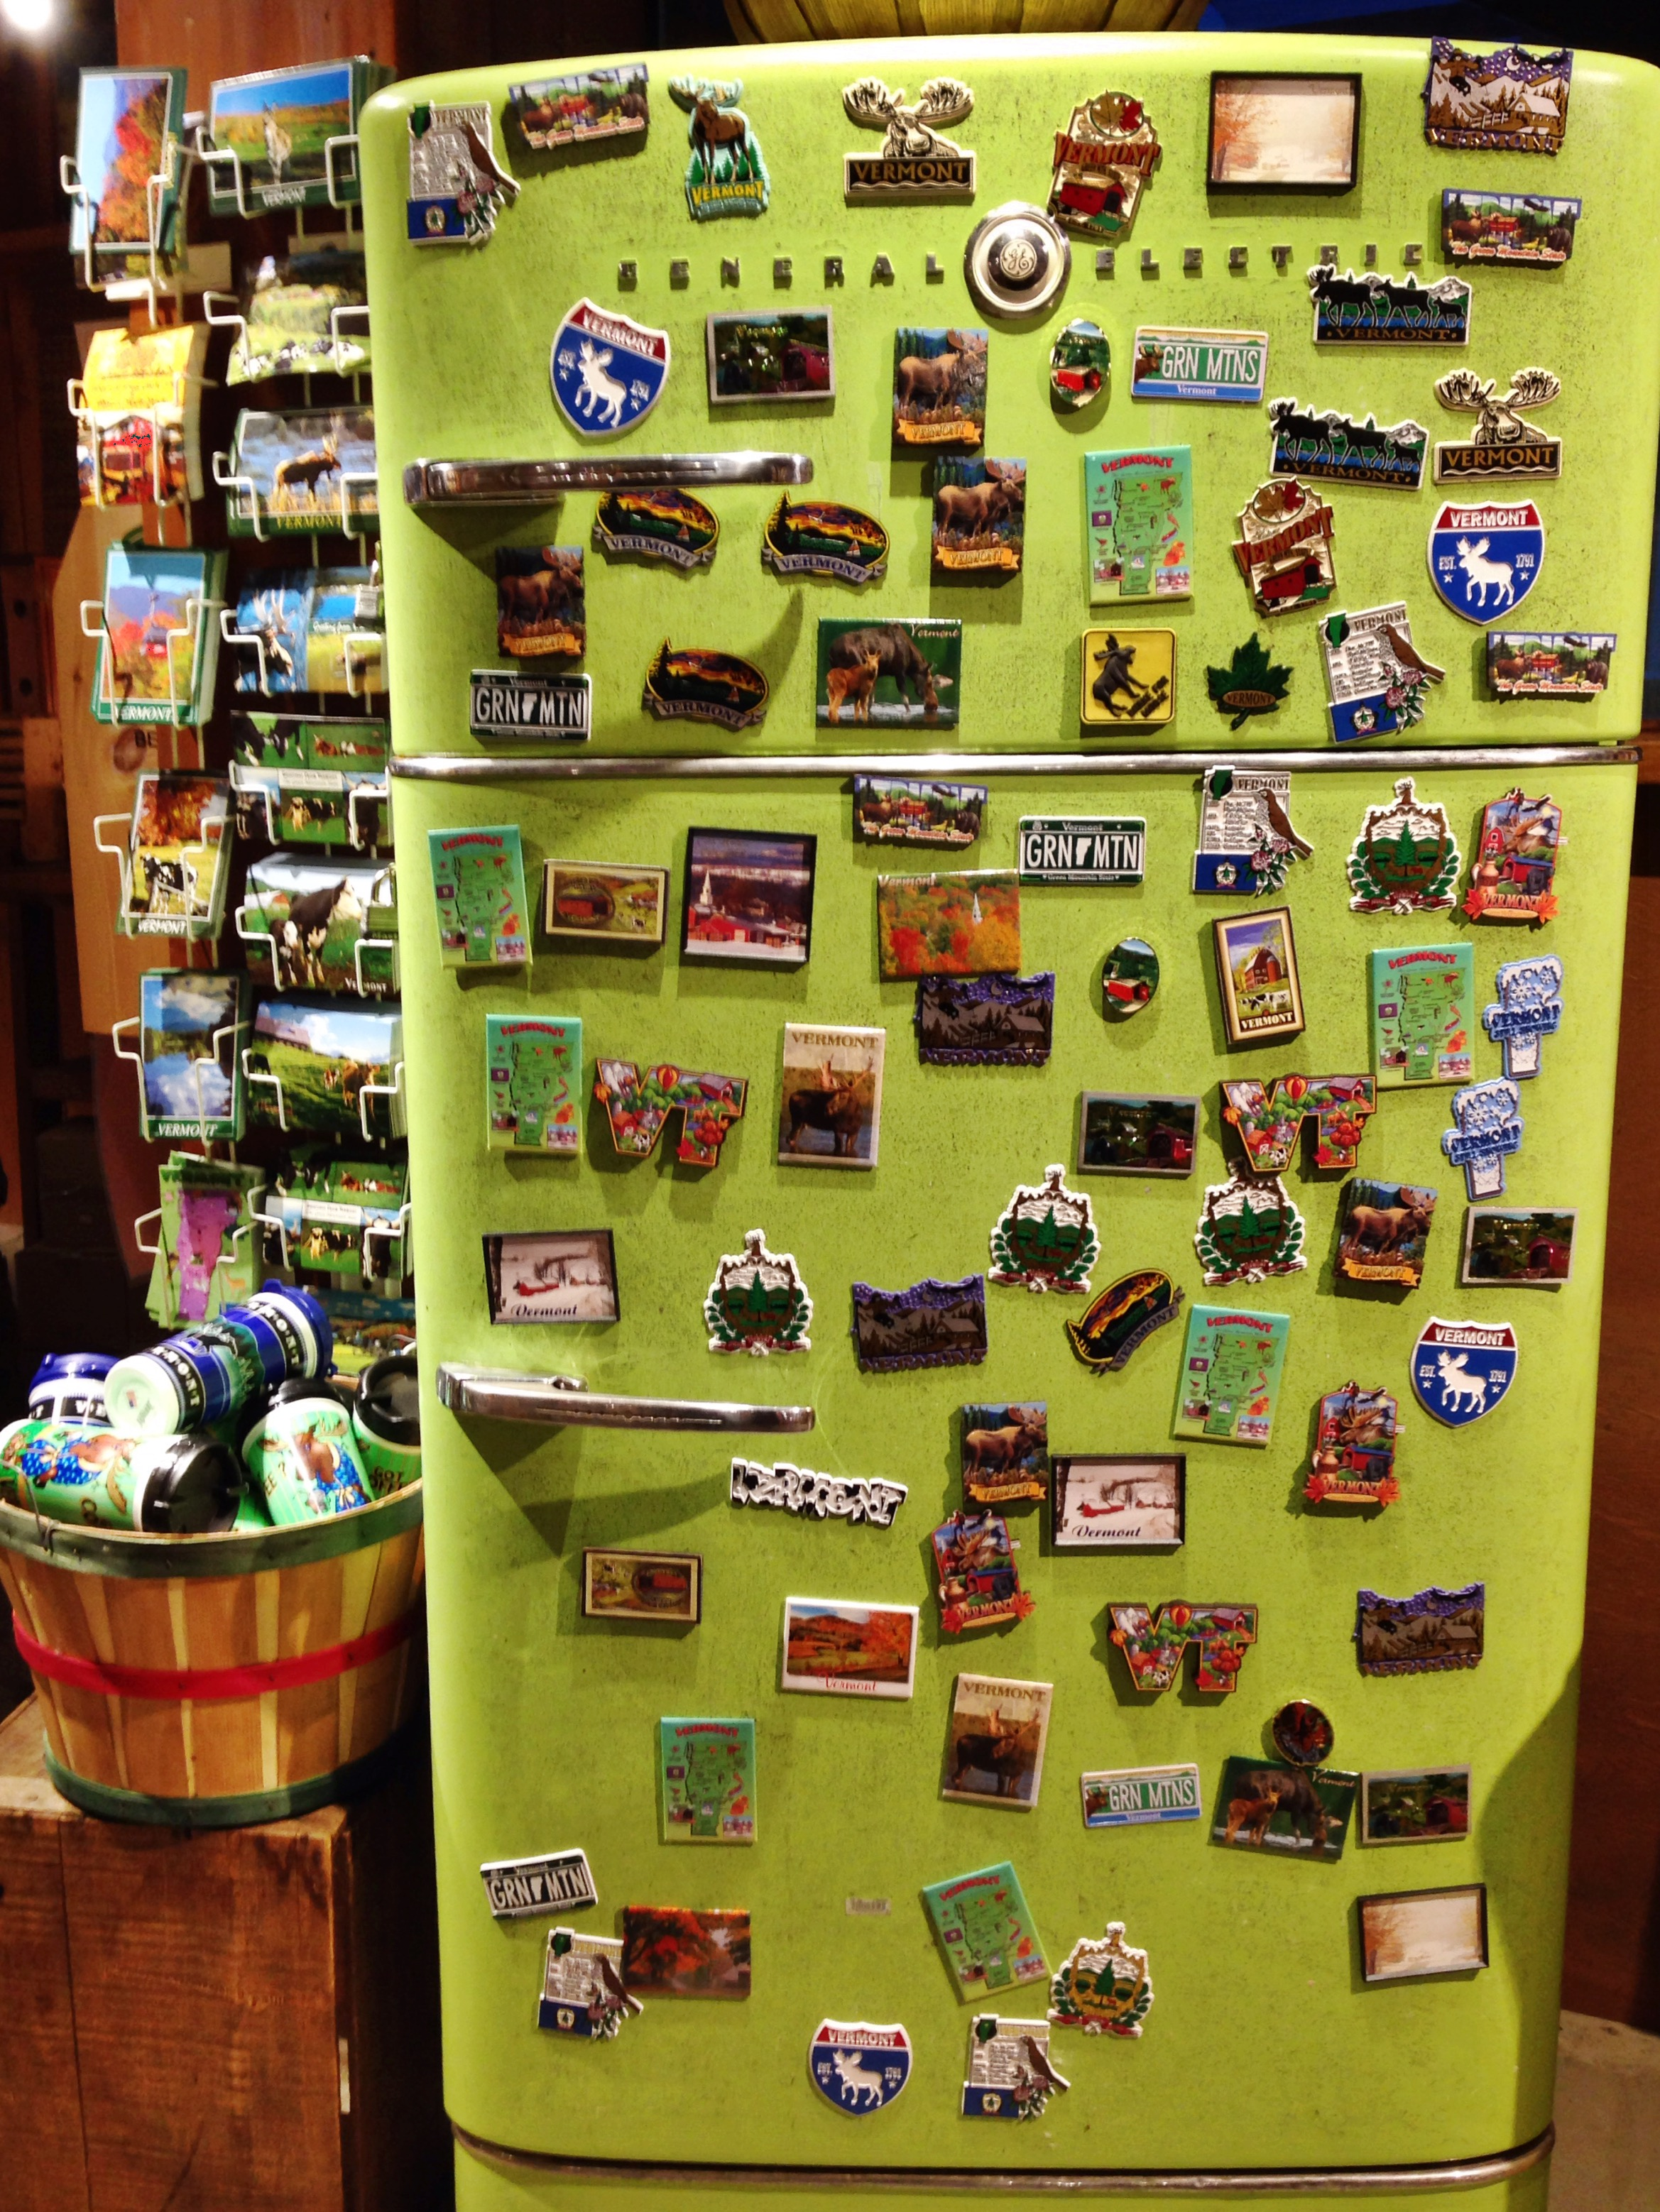 {Vermont magnets on an old green fridge}